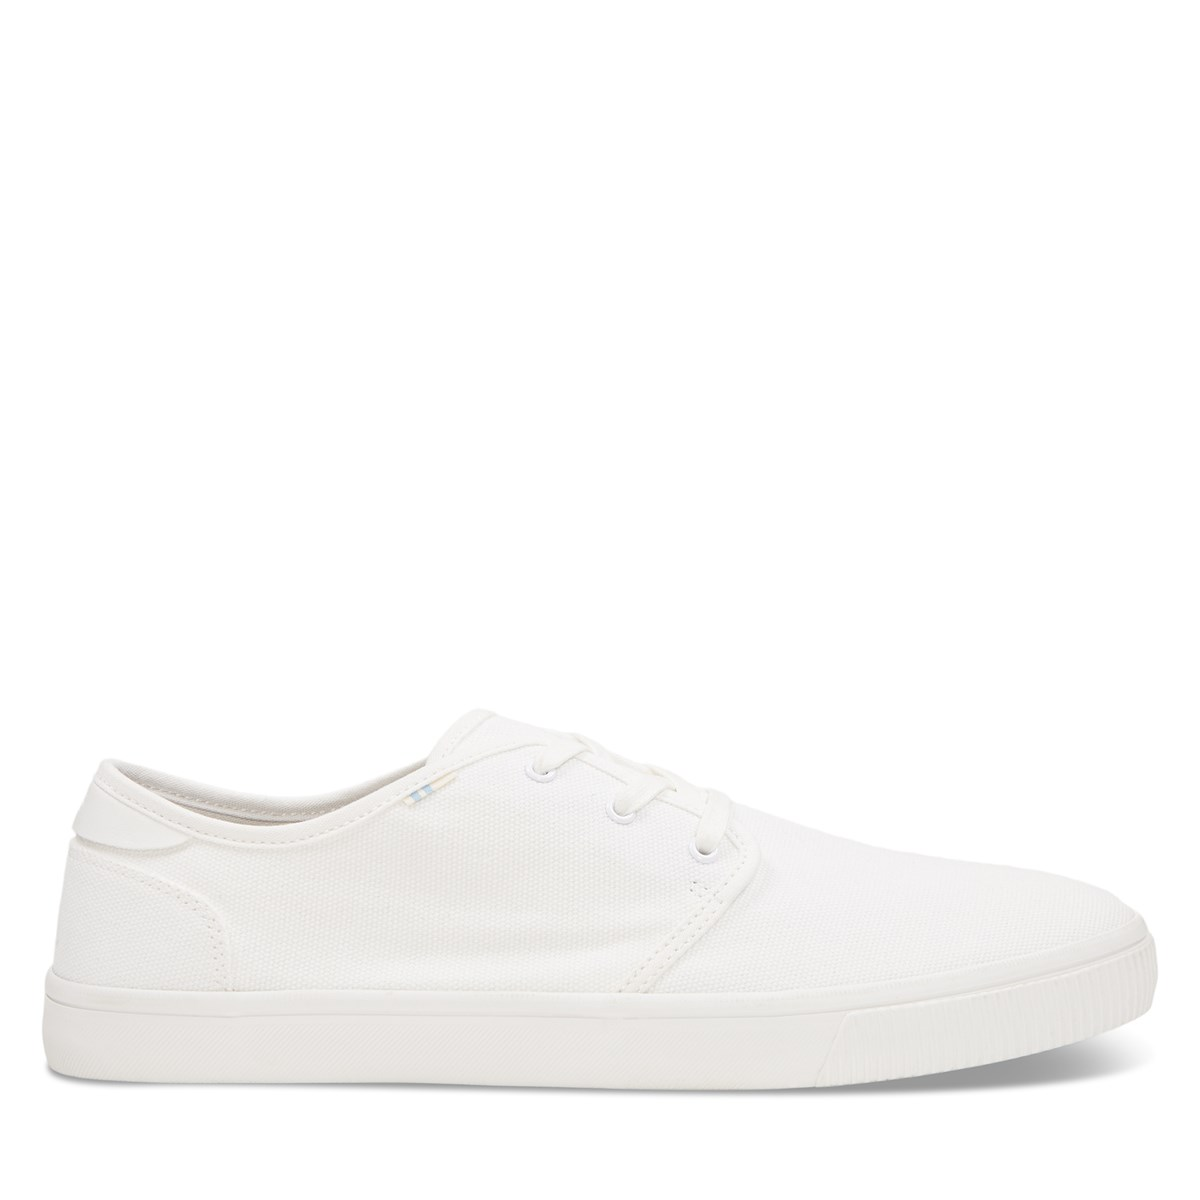 Men's Carlo Shoes in White